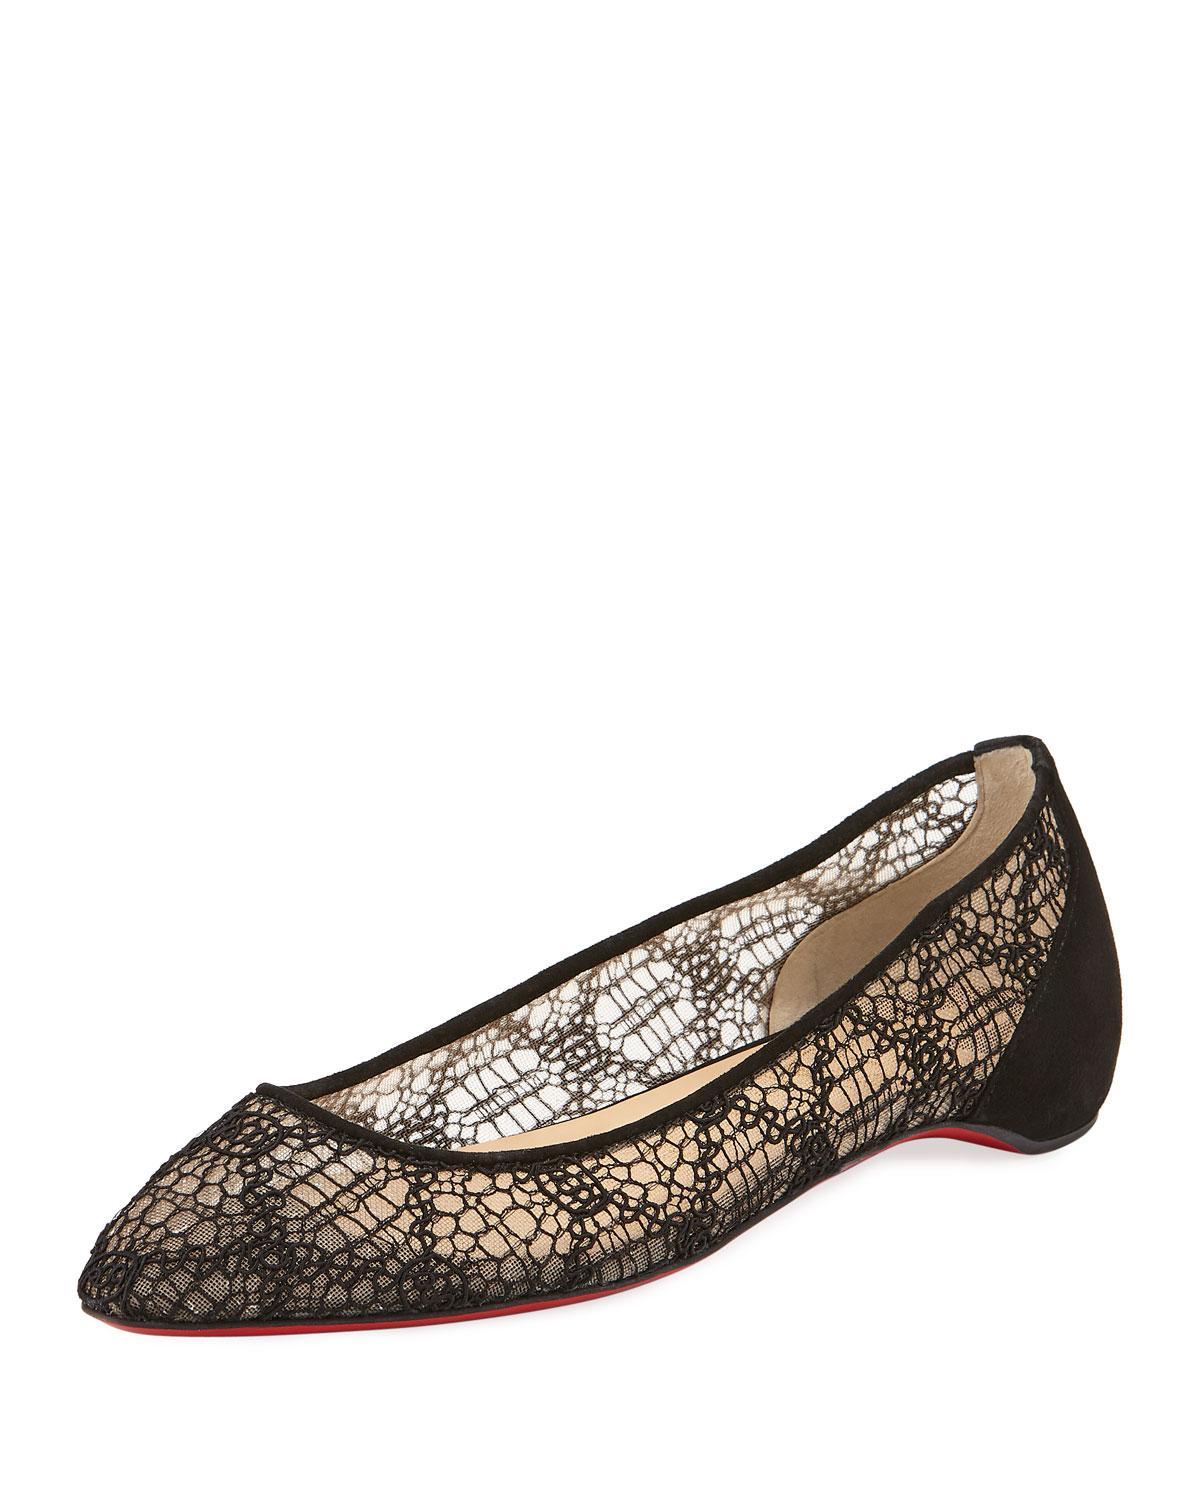 7816e6f520a4 Christian Louboutin Eloise Lace Red Sole Ballet Flats In Black ...